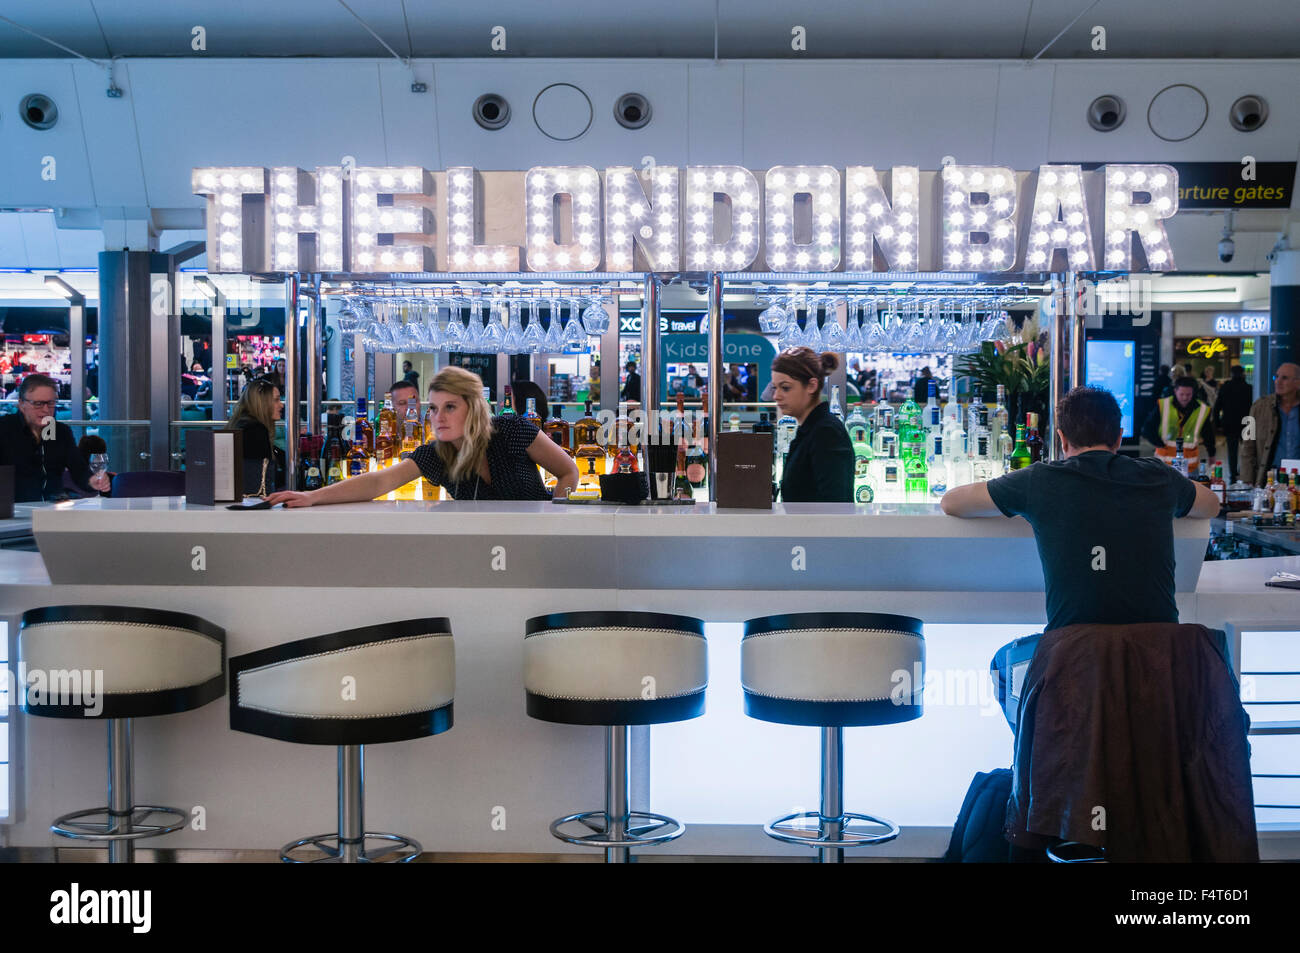 'The London' bar in Gatwick airport departures lounge. - Stock Image